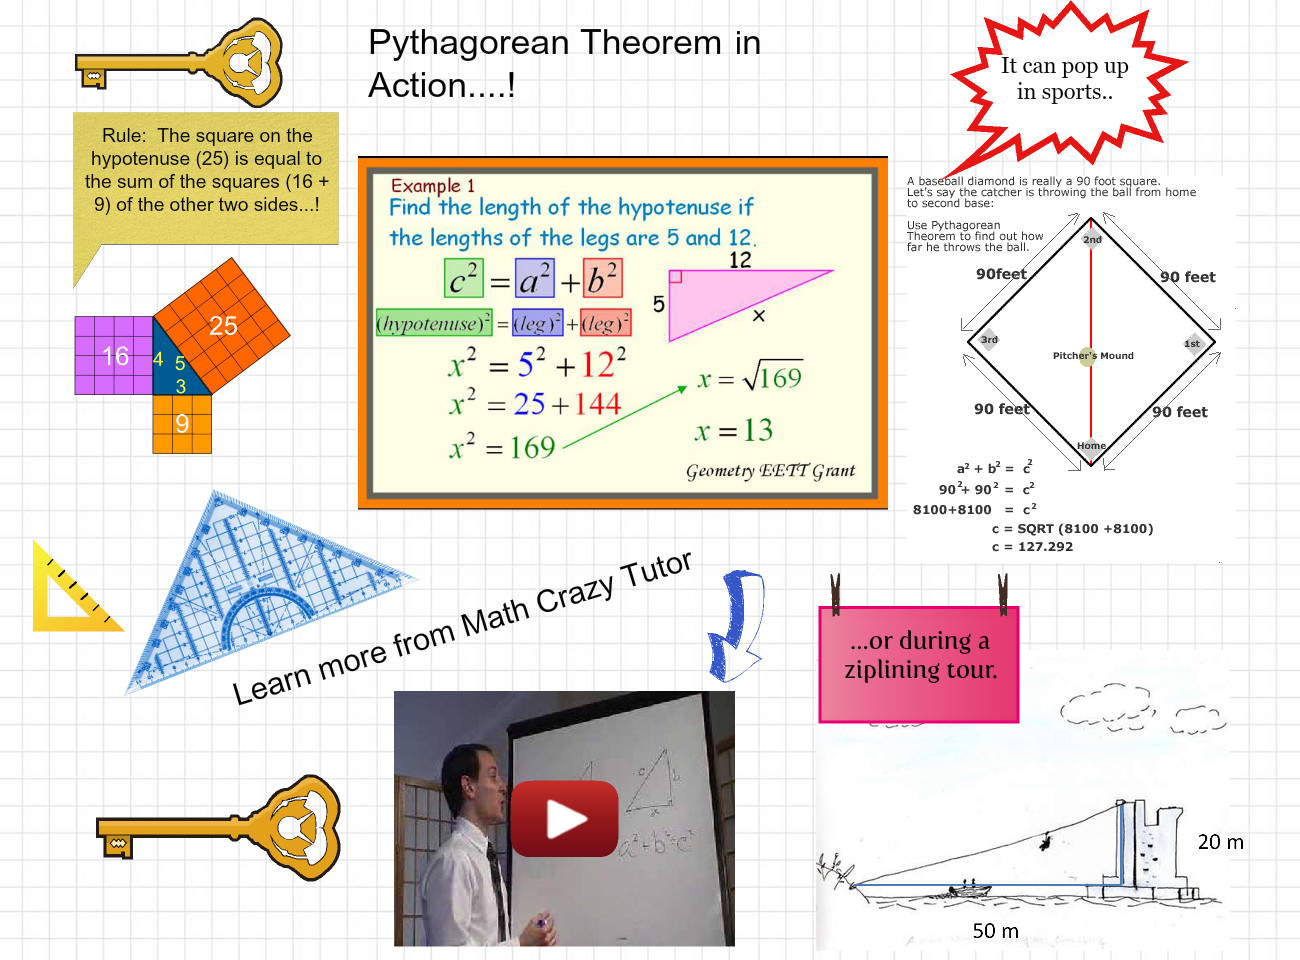 Pythagorean Theorem in Action